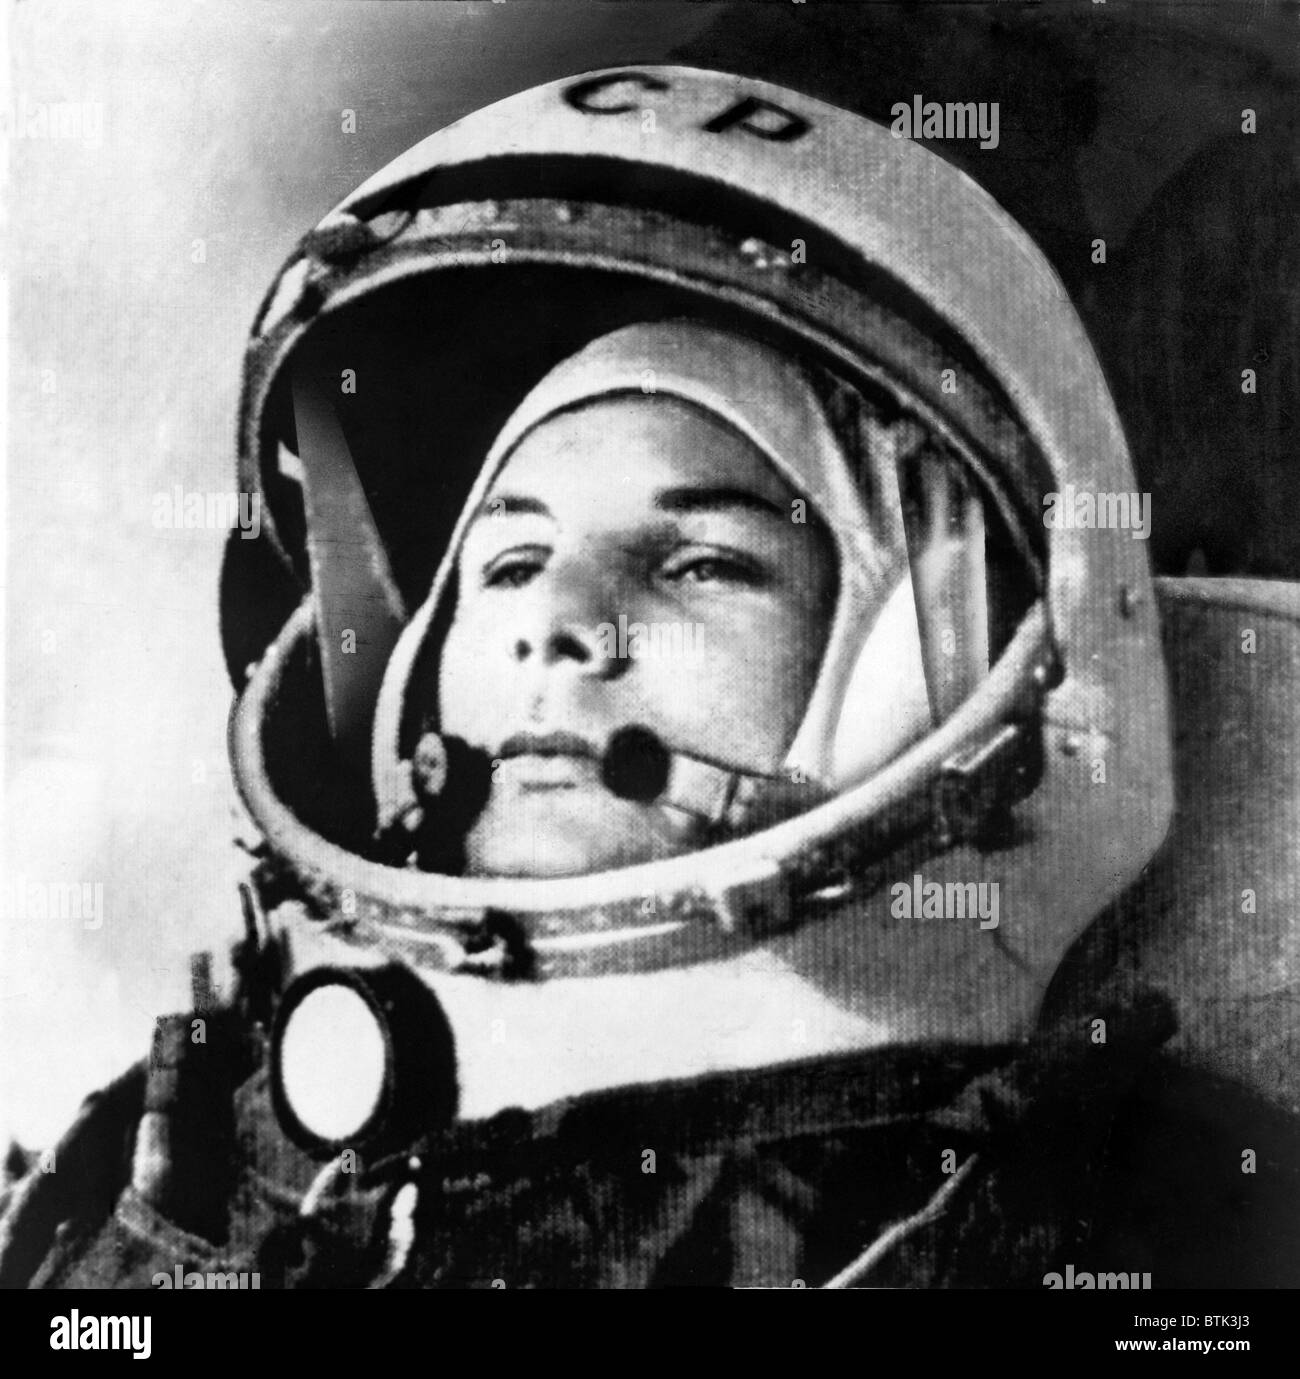 yuri gagarin russian astronaut - photo #19